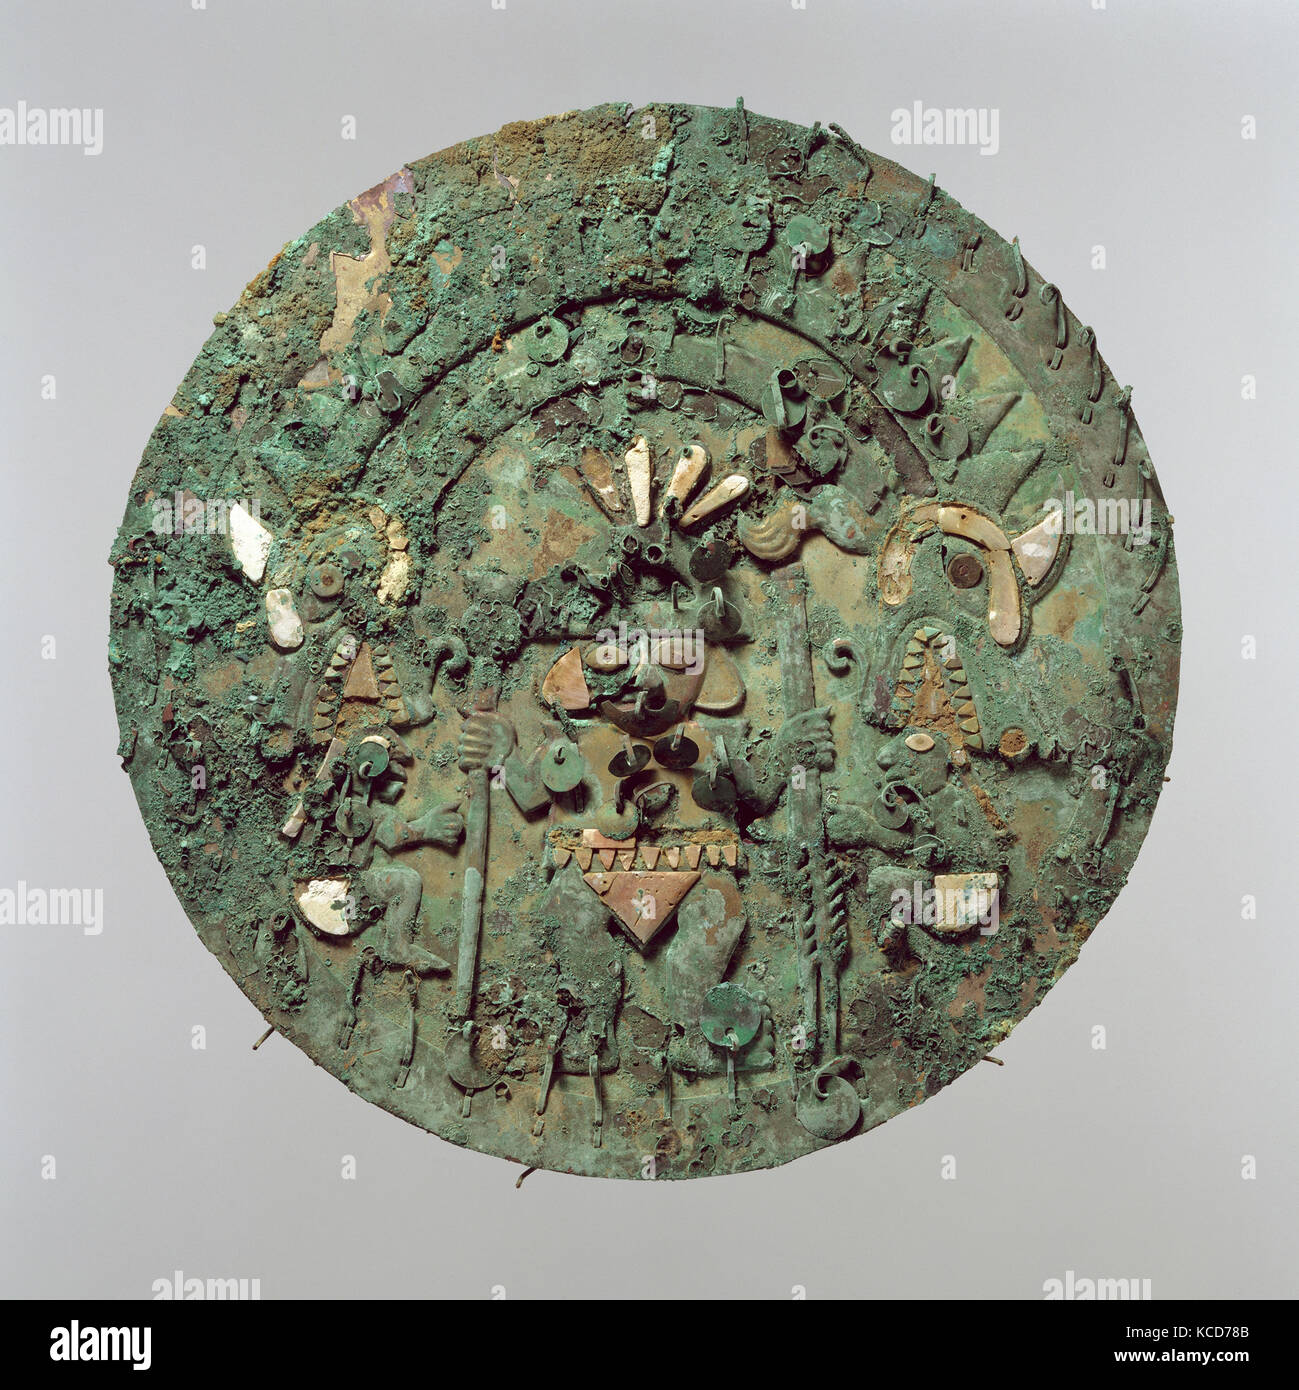 Disk with Figure, 2nd–3rd century, Peru, Moche, Gilded copper, silvered copper, shell, turquoise, Diam. 11 1/8 in. - Stock Image